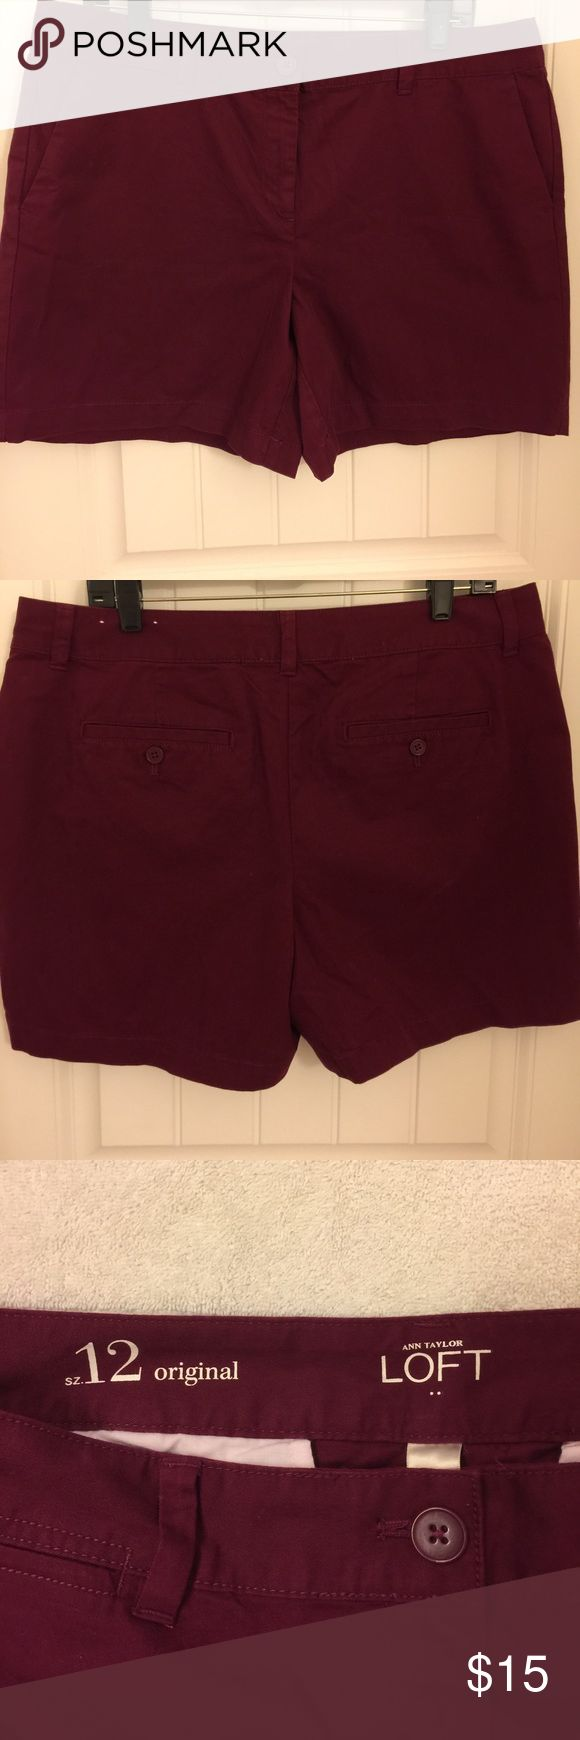 Ann Taylor Loft Shorts Size 12 Anne Taylor Loft Shorts. Size 12. Pre-owned in great condition with no known tears snags or stains. Washed per tag. Please feel free to ask questions. Thanks! Ann Taylor Shorts